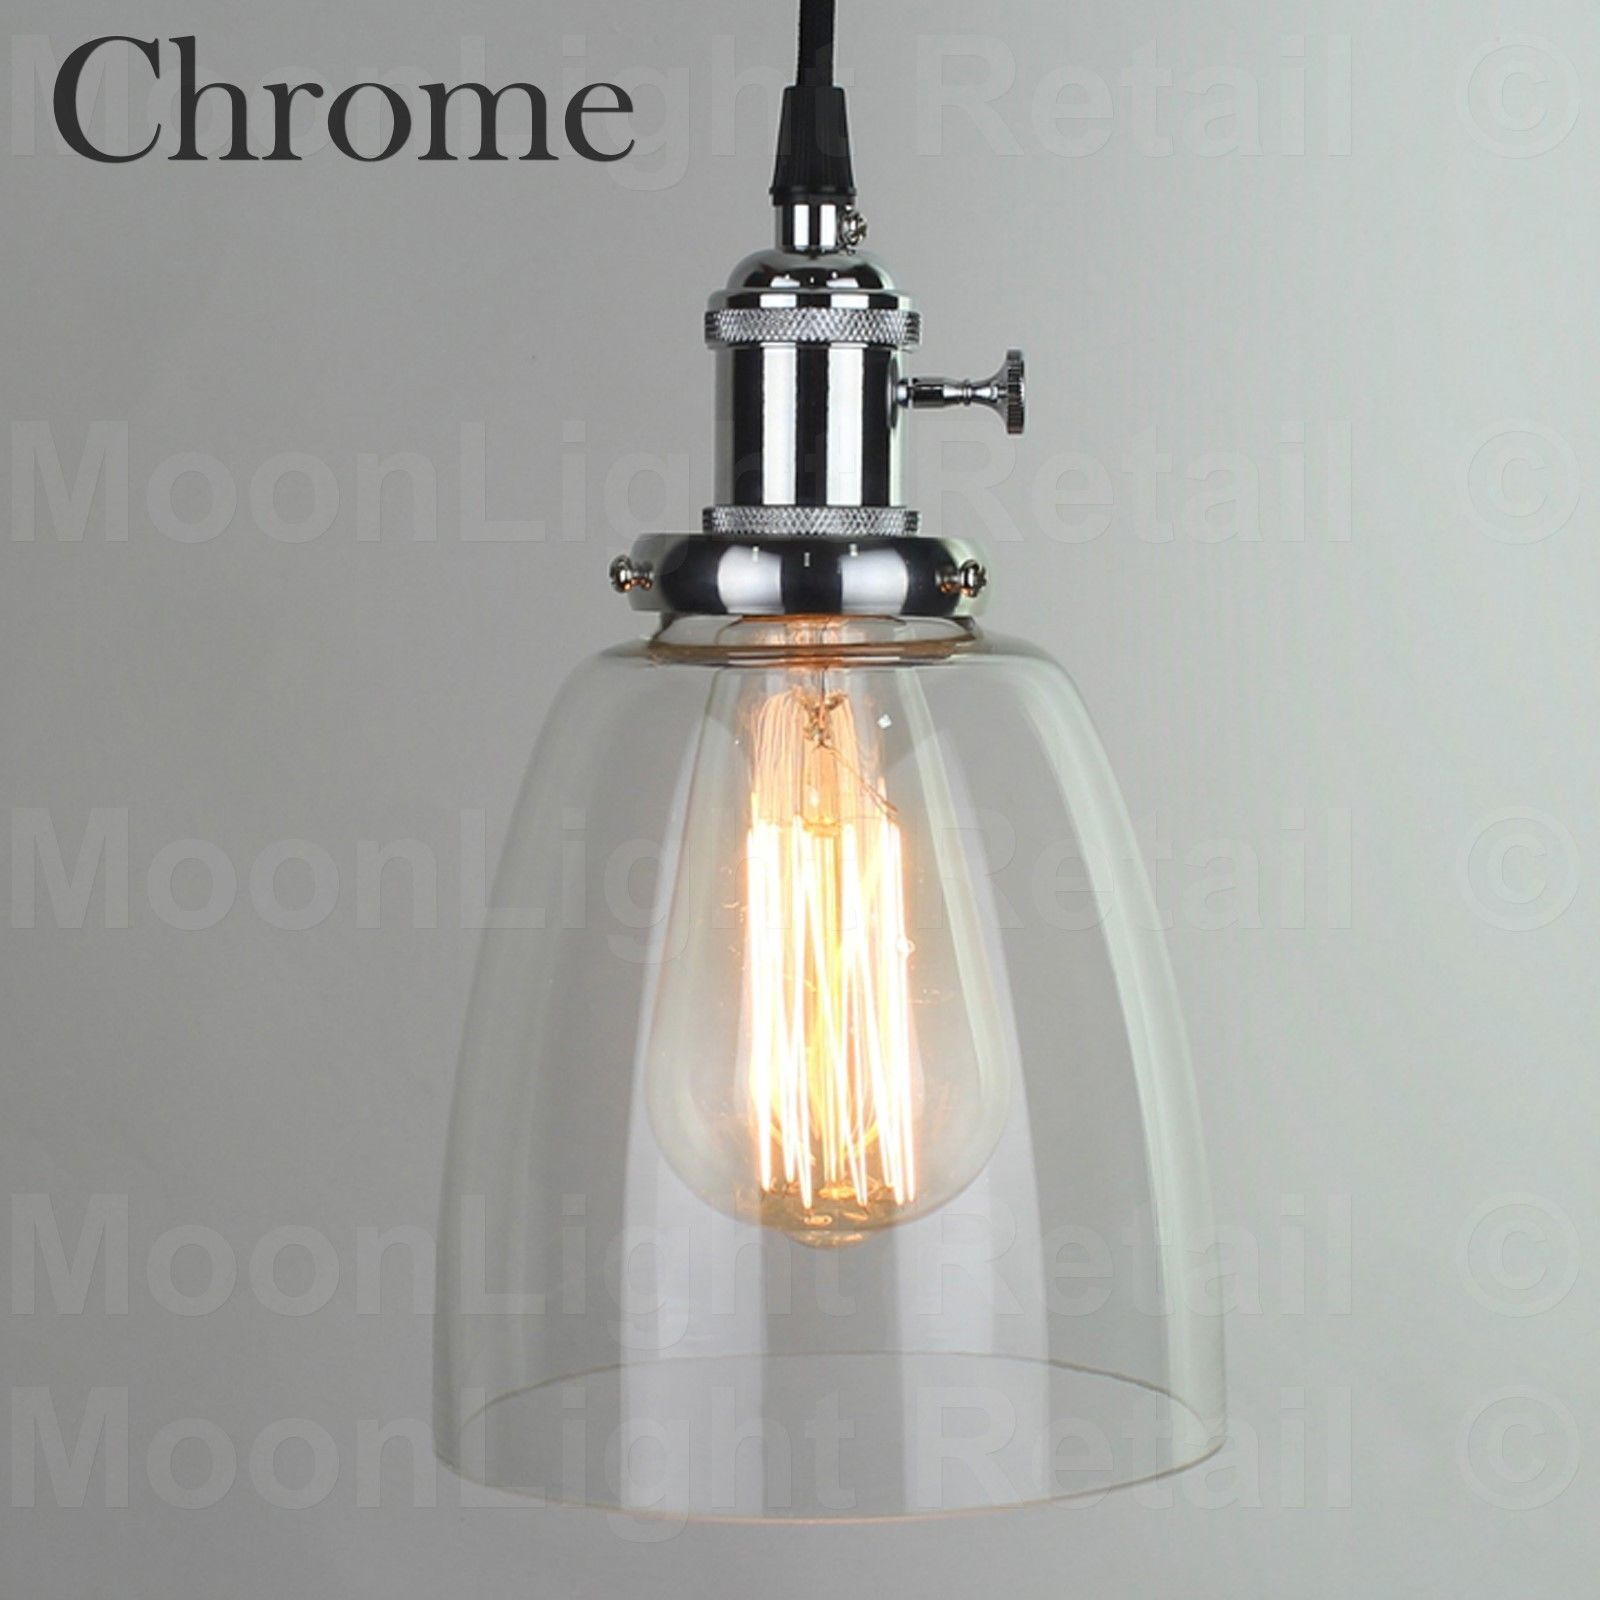 permo with ceiling vintage amazonsmile light fixture anqitue clear glass industrial shade lights pendant funnel flared pin